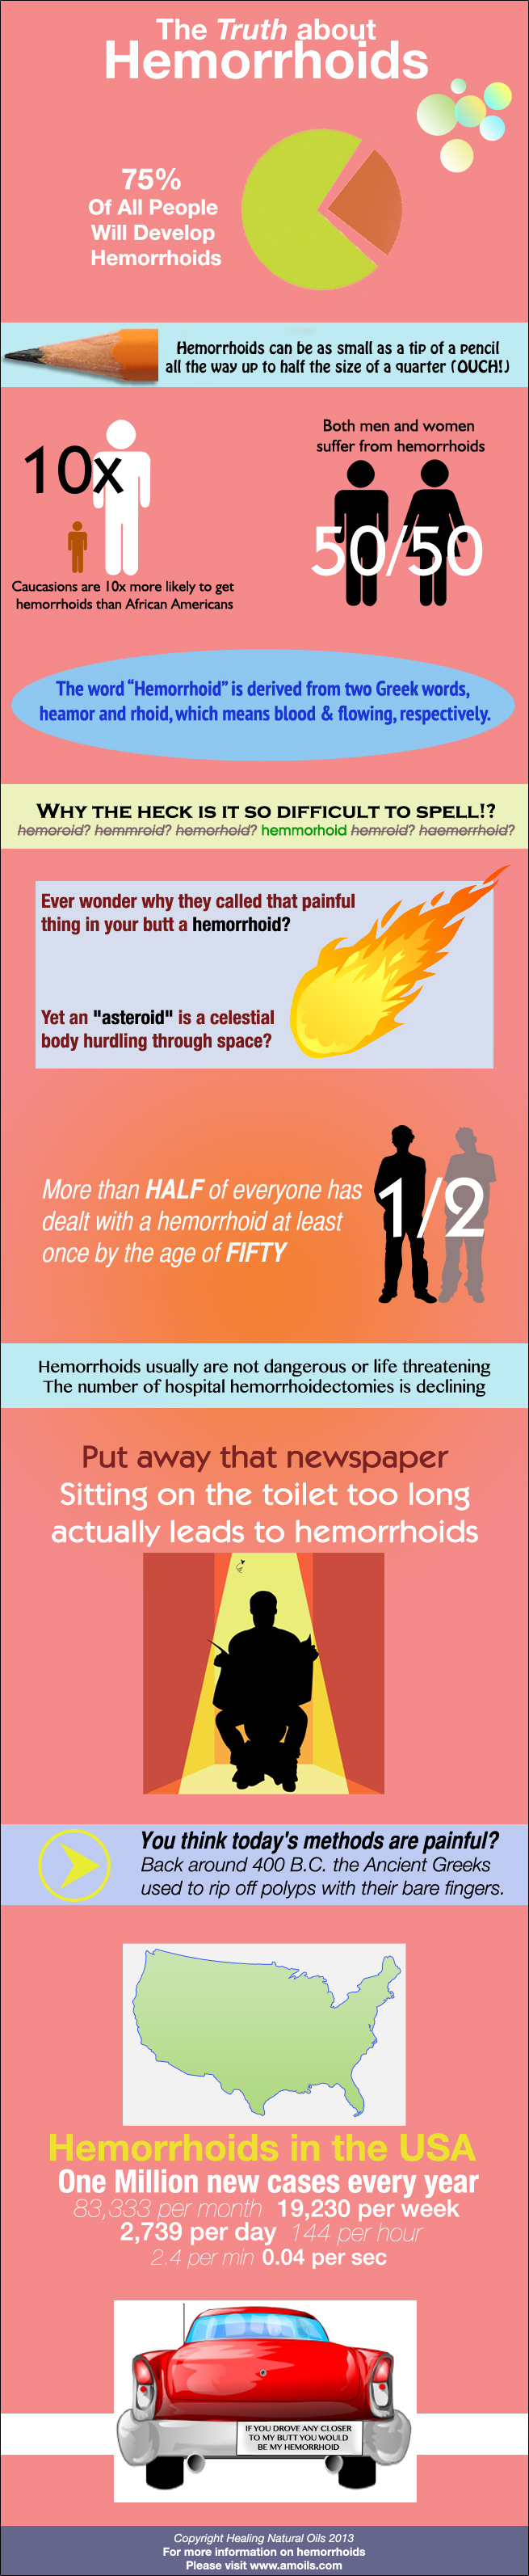 Truth About Hemorrhoids